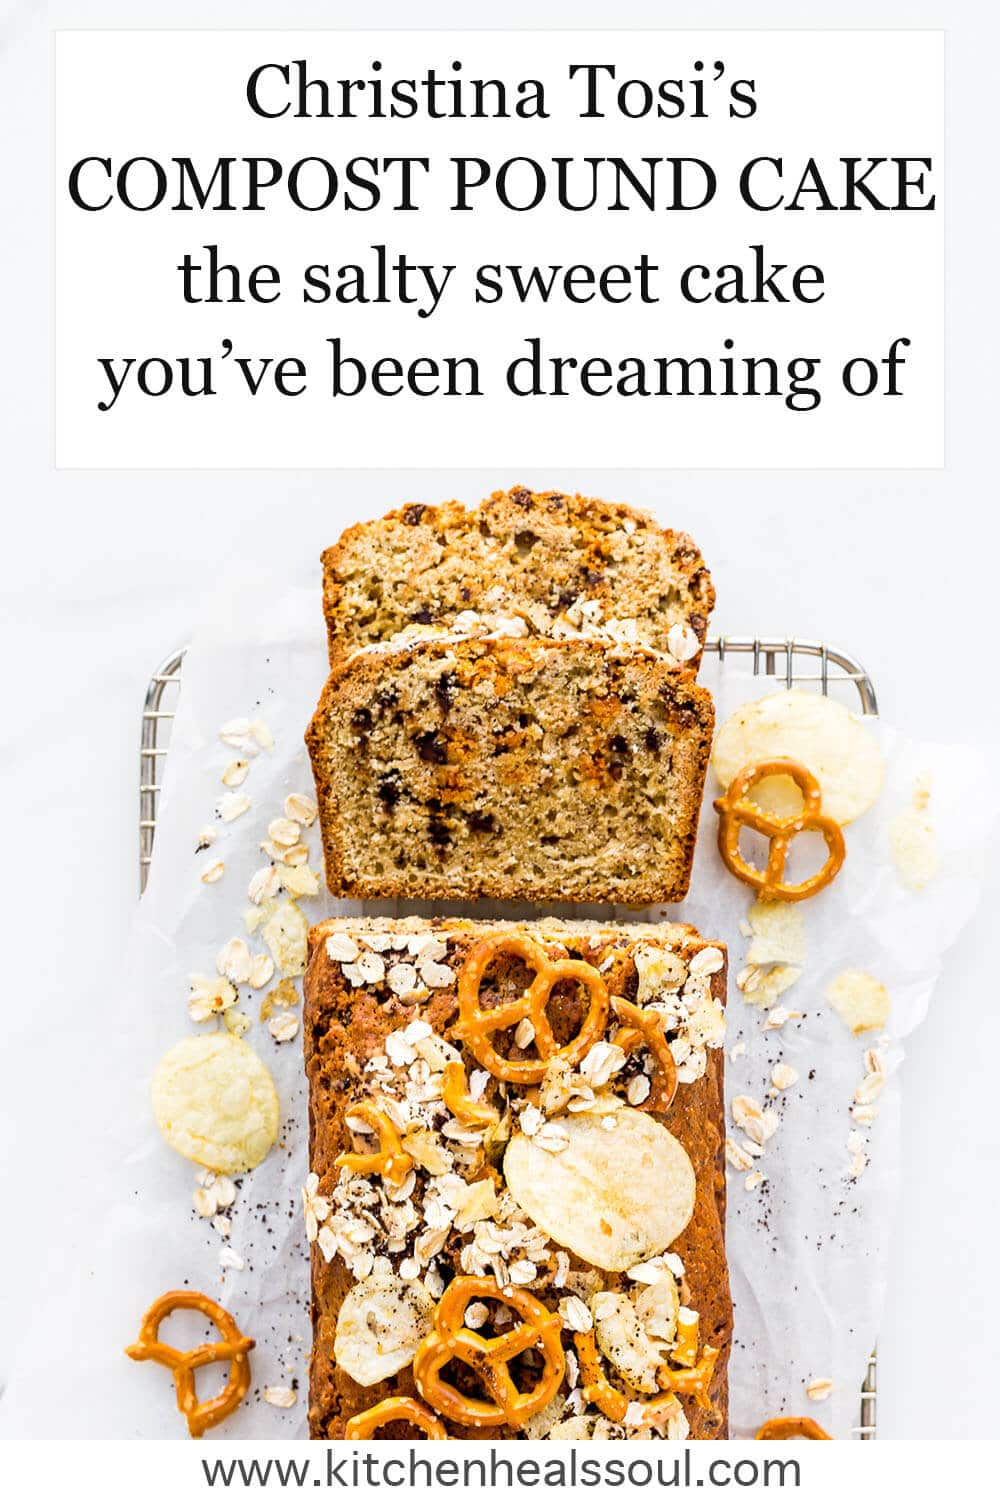 Sliced compost pound cake baked in a loaf pan and toped with pretzels, chips, oats, coffee grinds, and made with chocolate chips and butterscotch morsels